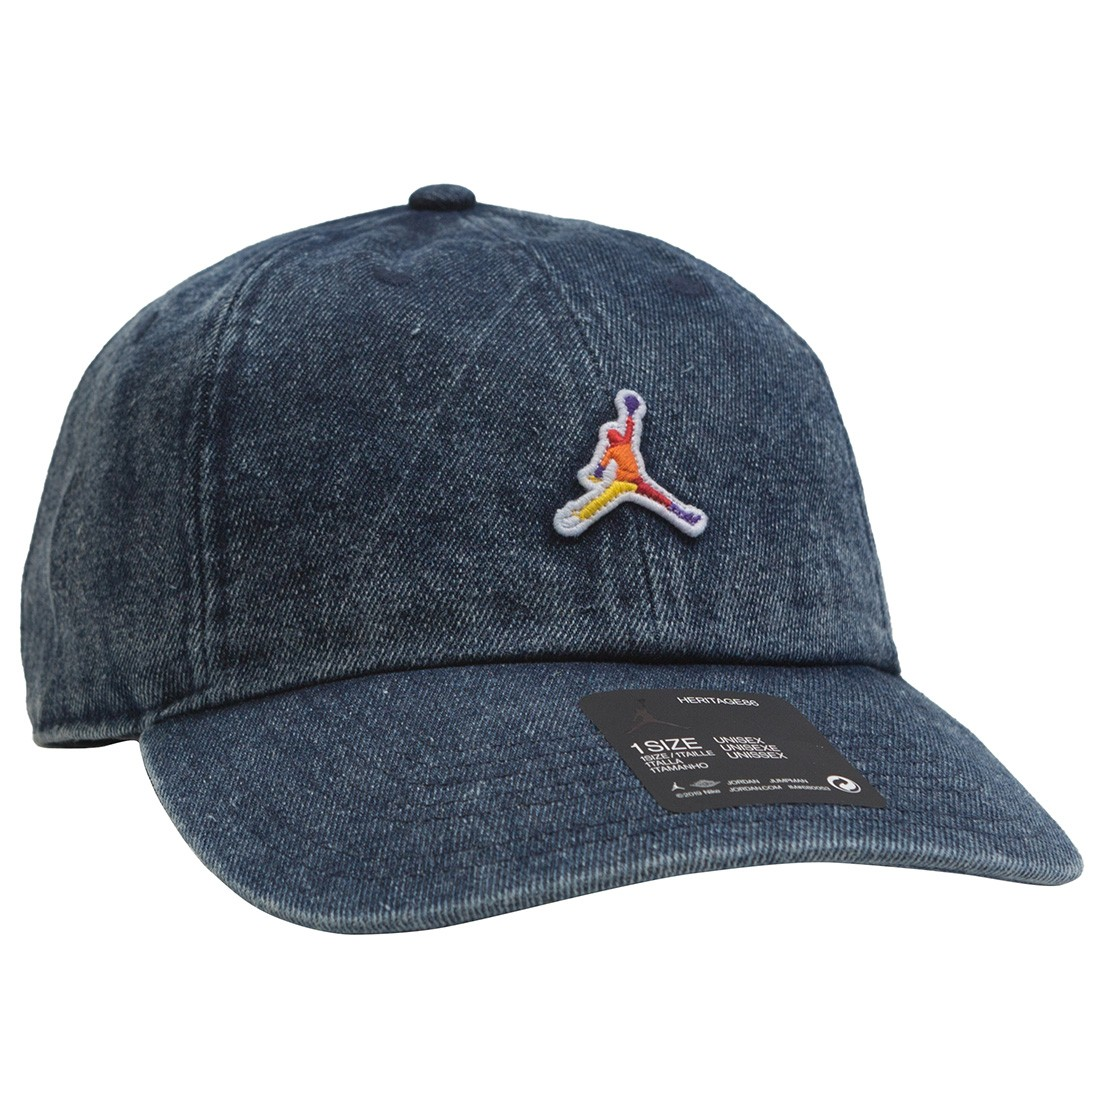 Jordan Men Heritage86 Washed Denim Cap (battle blue)